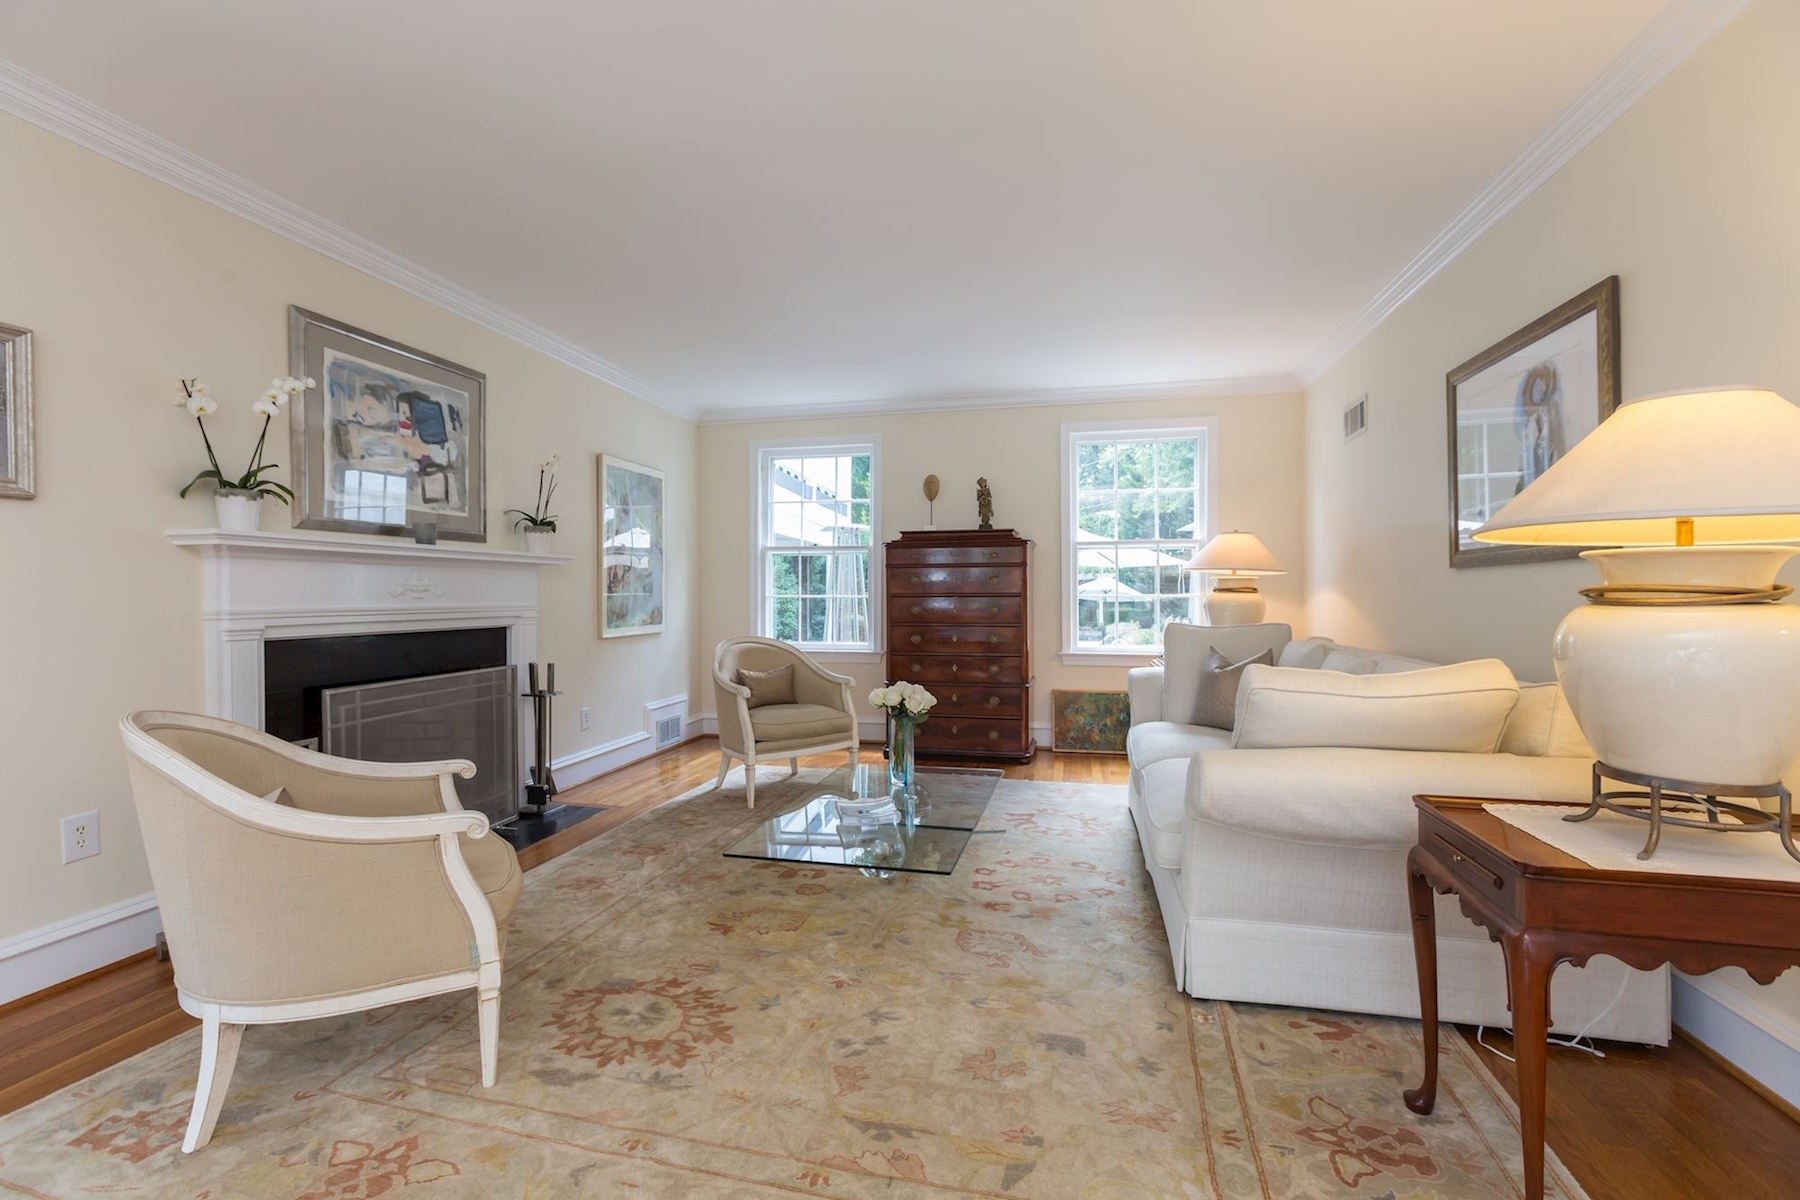 Additional photo for property listing at 5153 Tilden Street 5153 Tilden Street Nw Washington, District Of Columbia 20016 Verenigde Staten